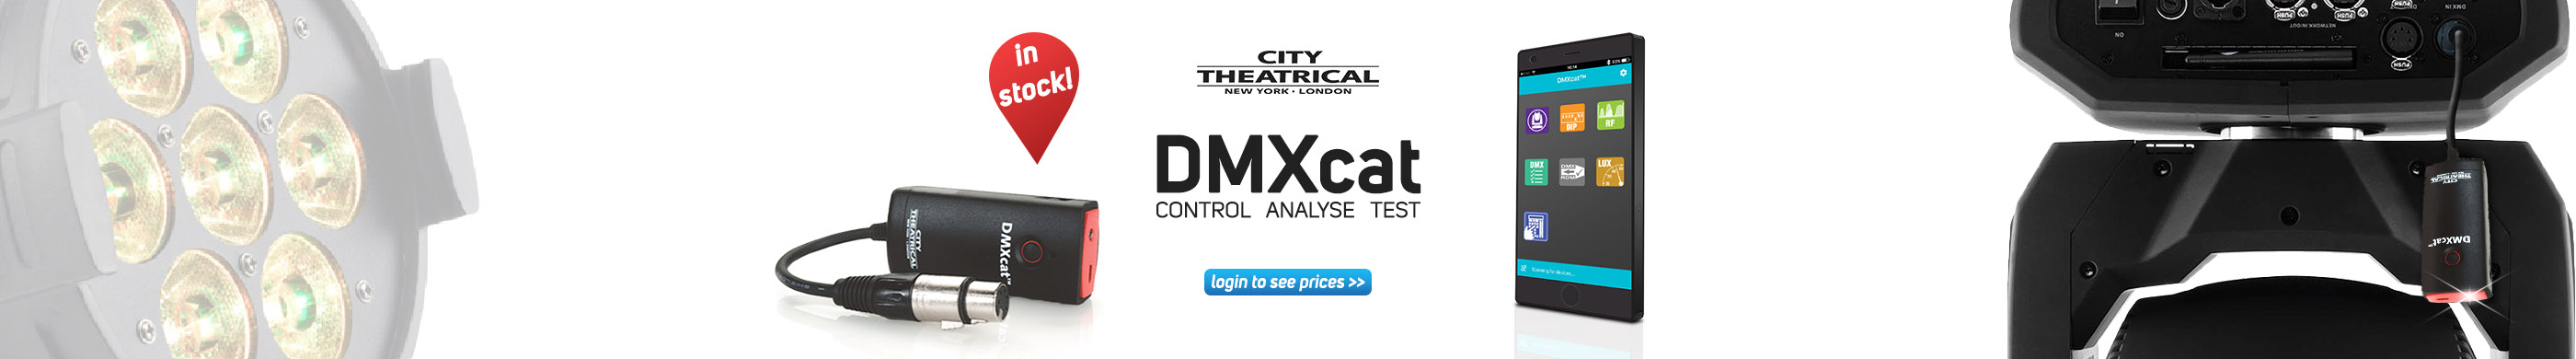 Lighting: Introducing the DMXcat